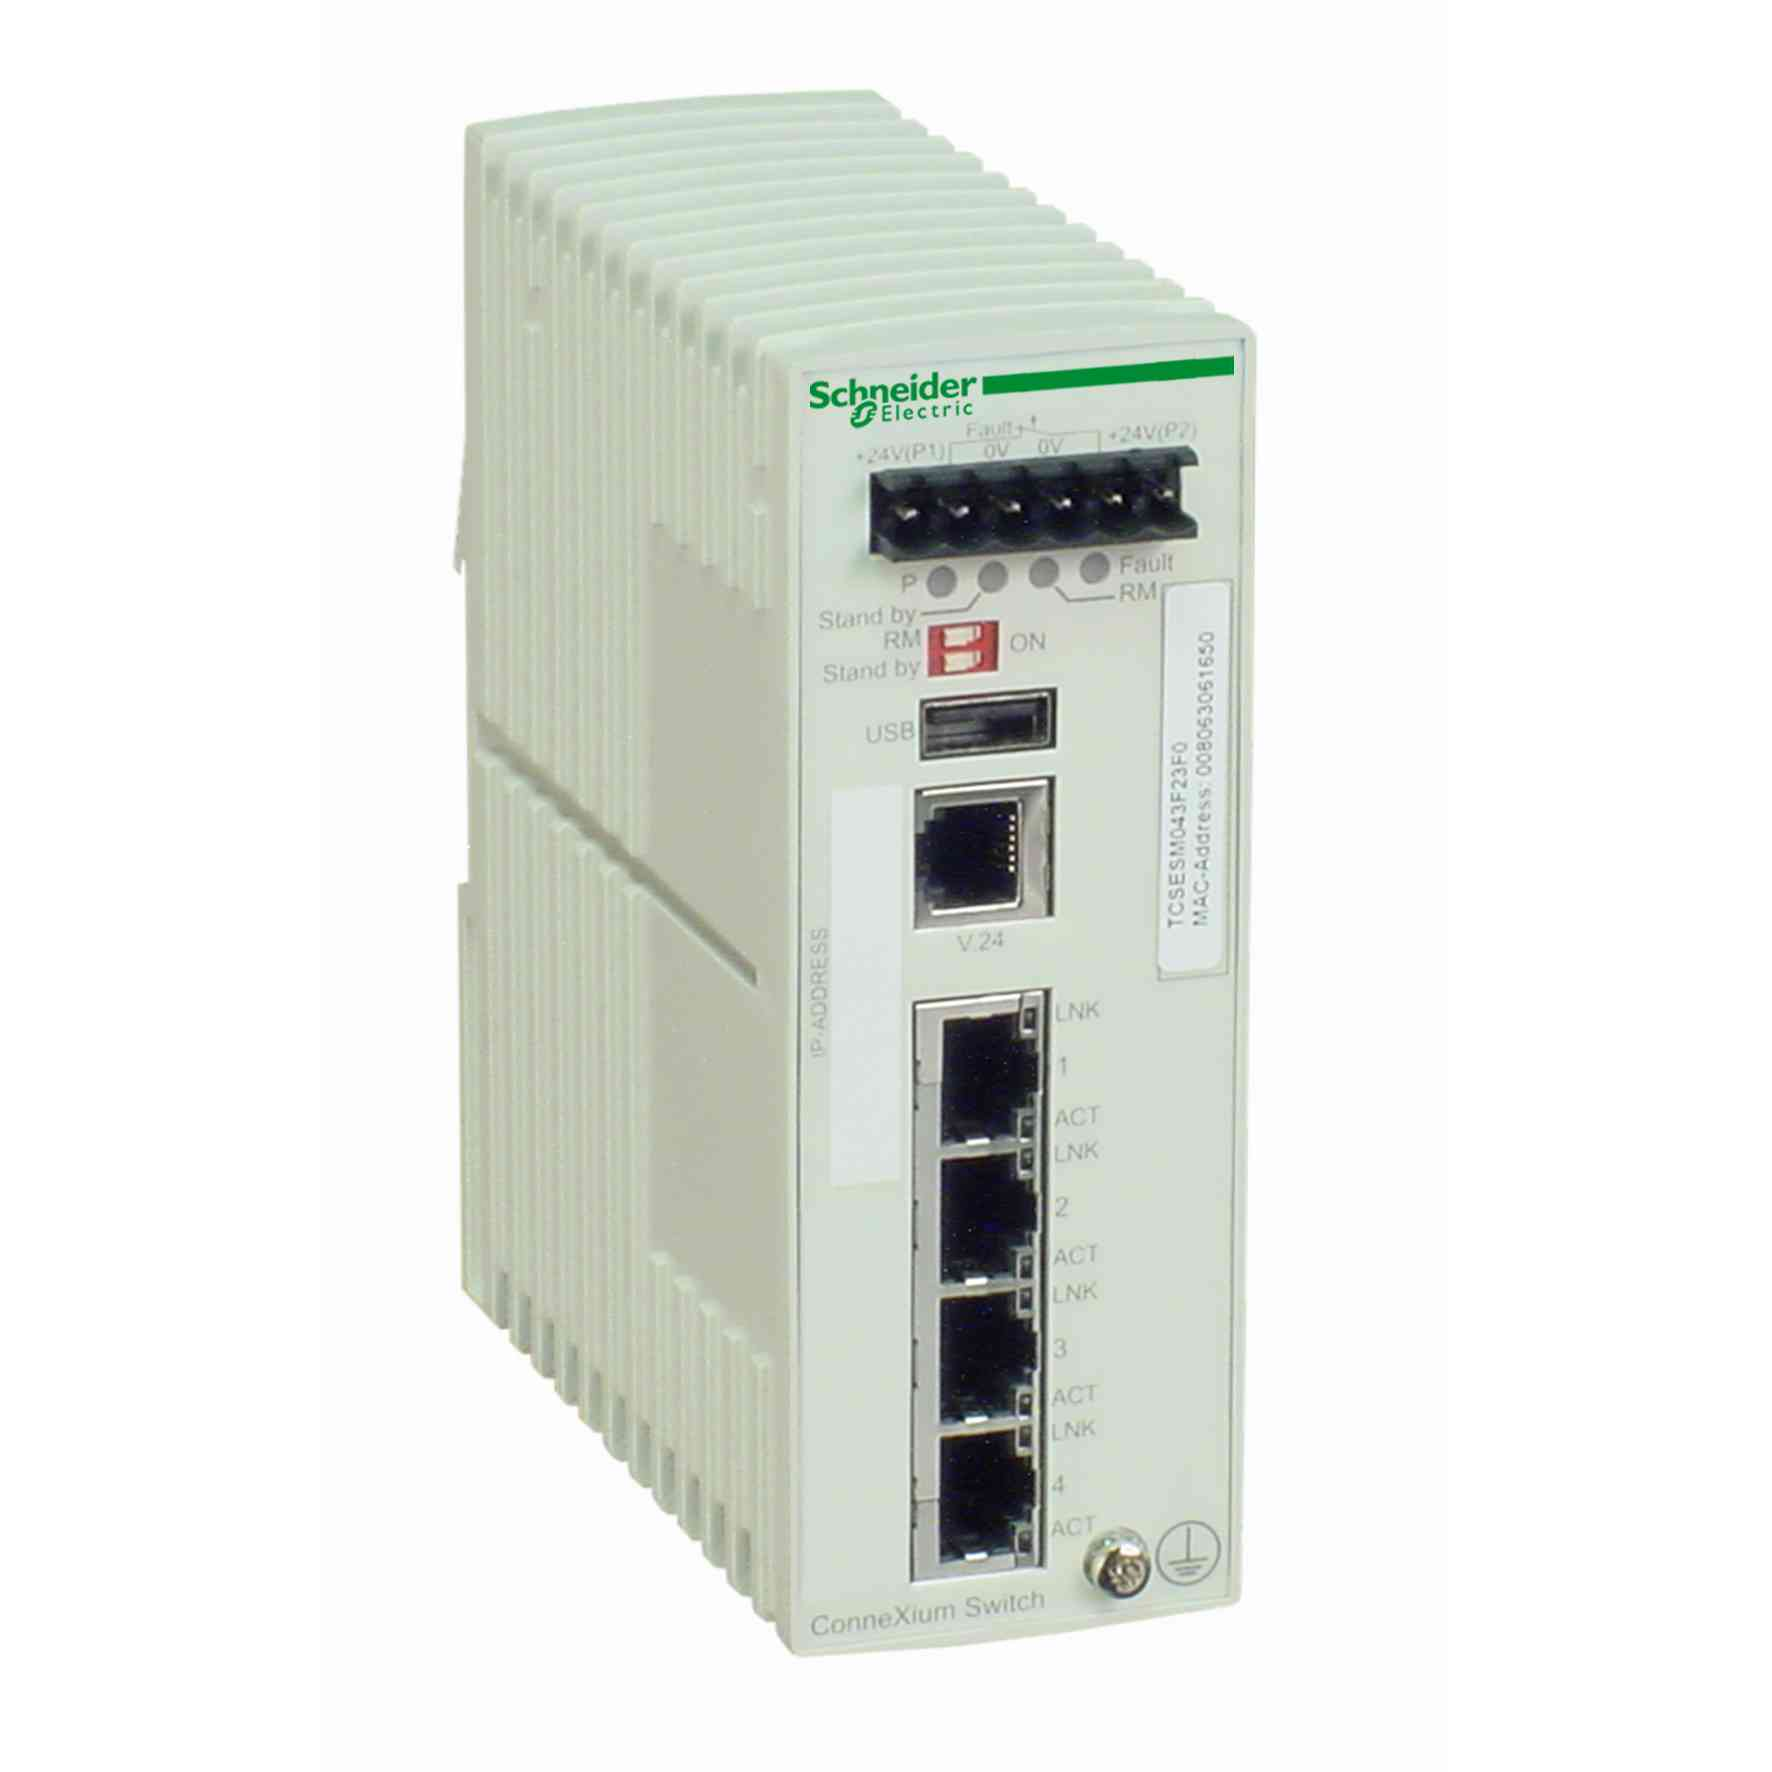 Ethernet TCP/IP managed stikalo - ConneXium - 4 vrata za bakreni kabel